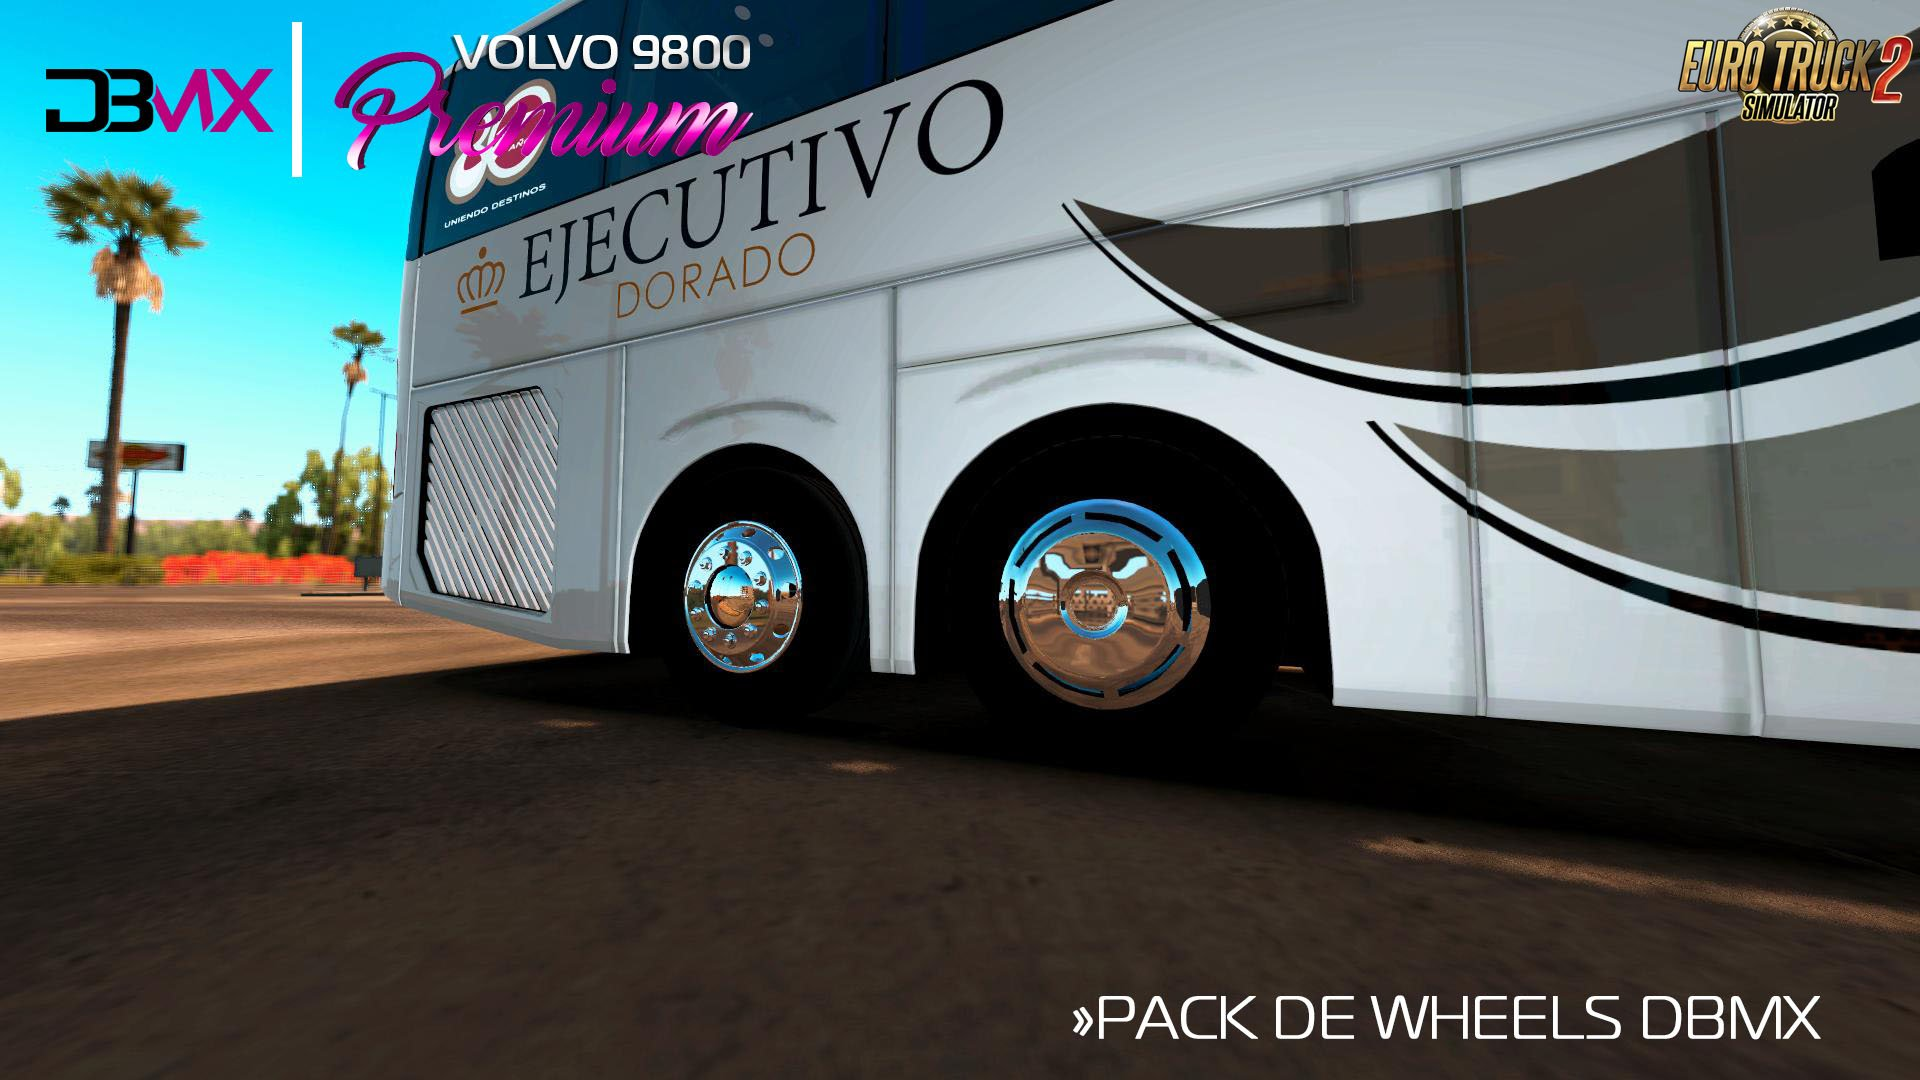 Bus Volvo 9800 + Interior v2.1 (1.36.x)